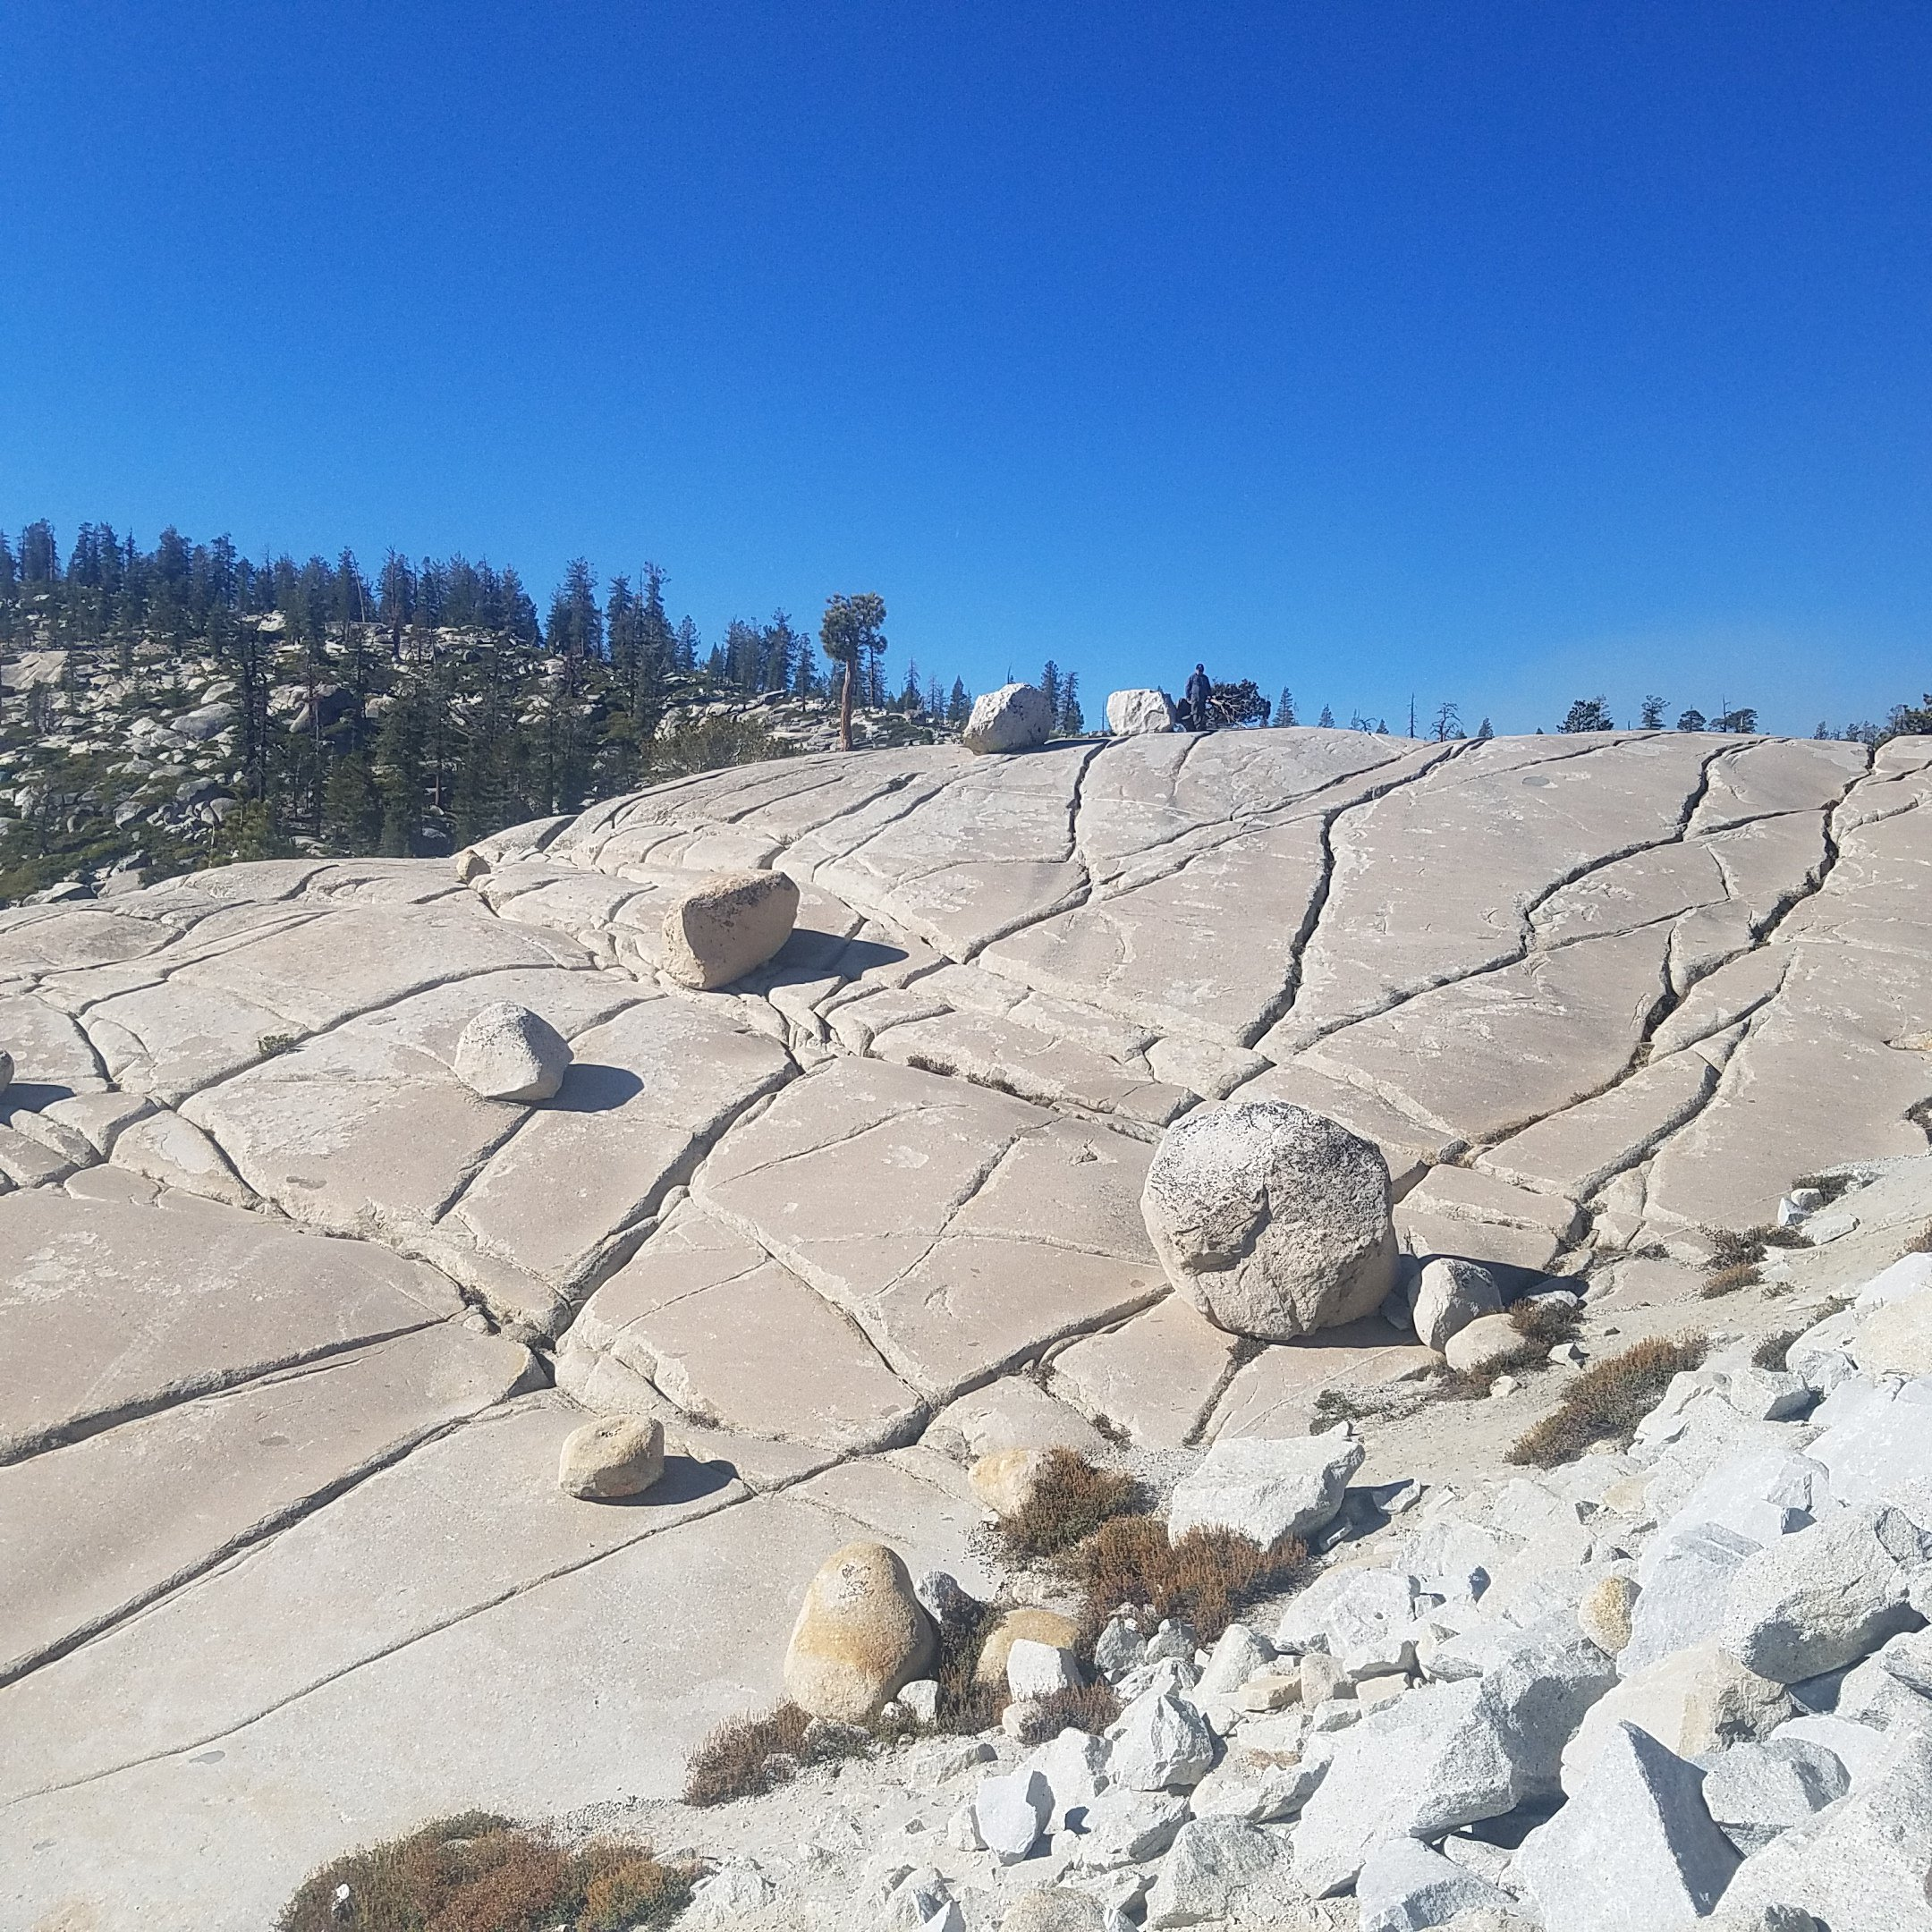 #yosemite,tiogapass,#olmsted